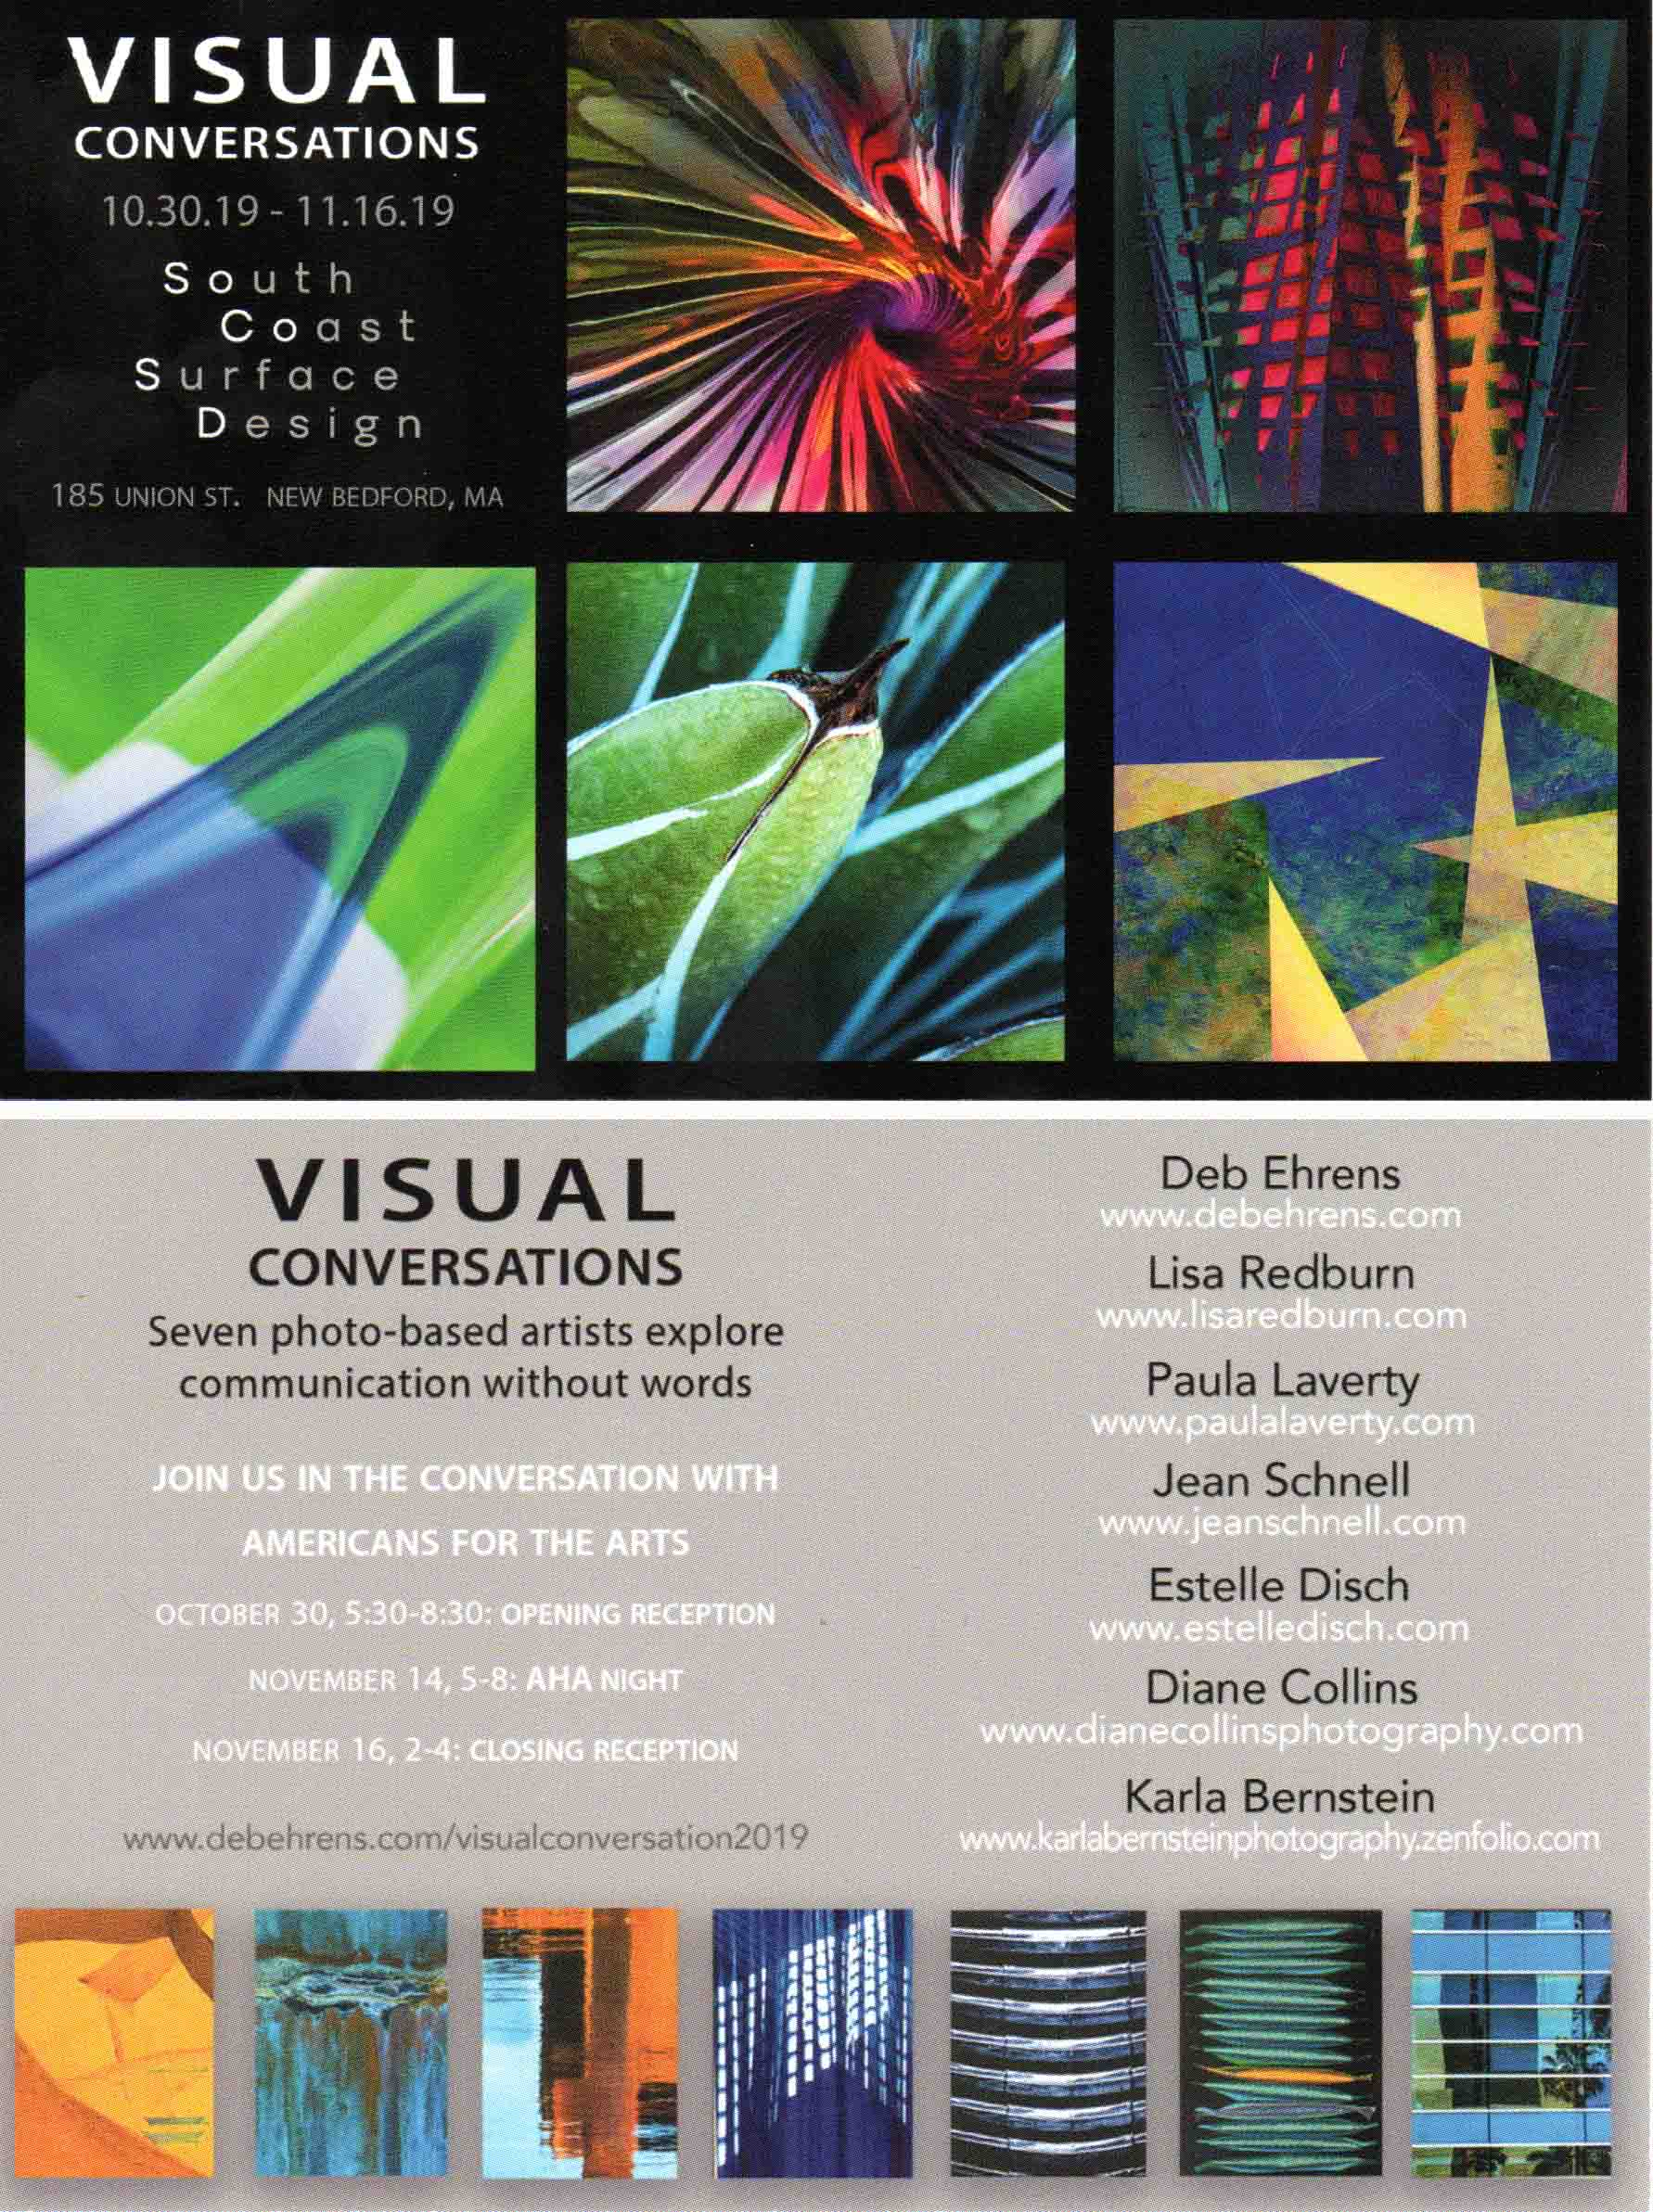 Surface Designs for Visual Conversations